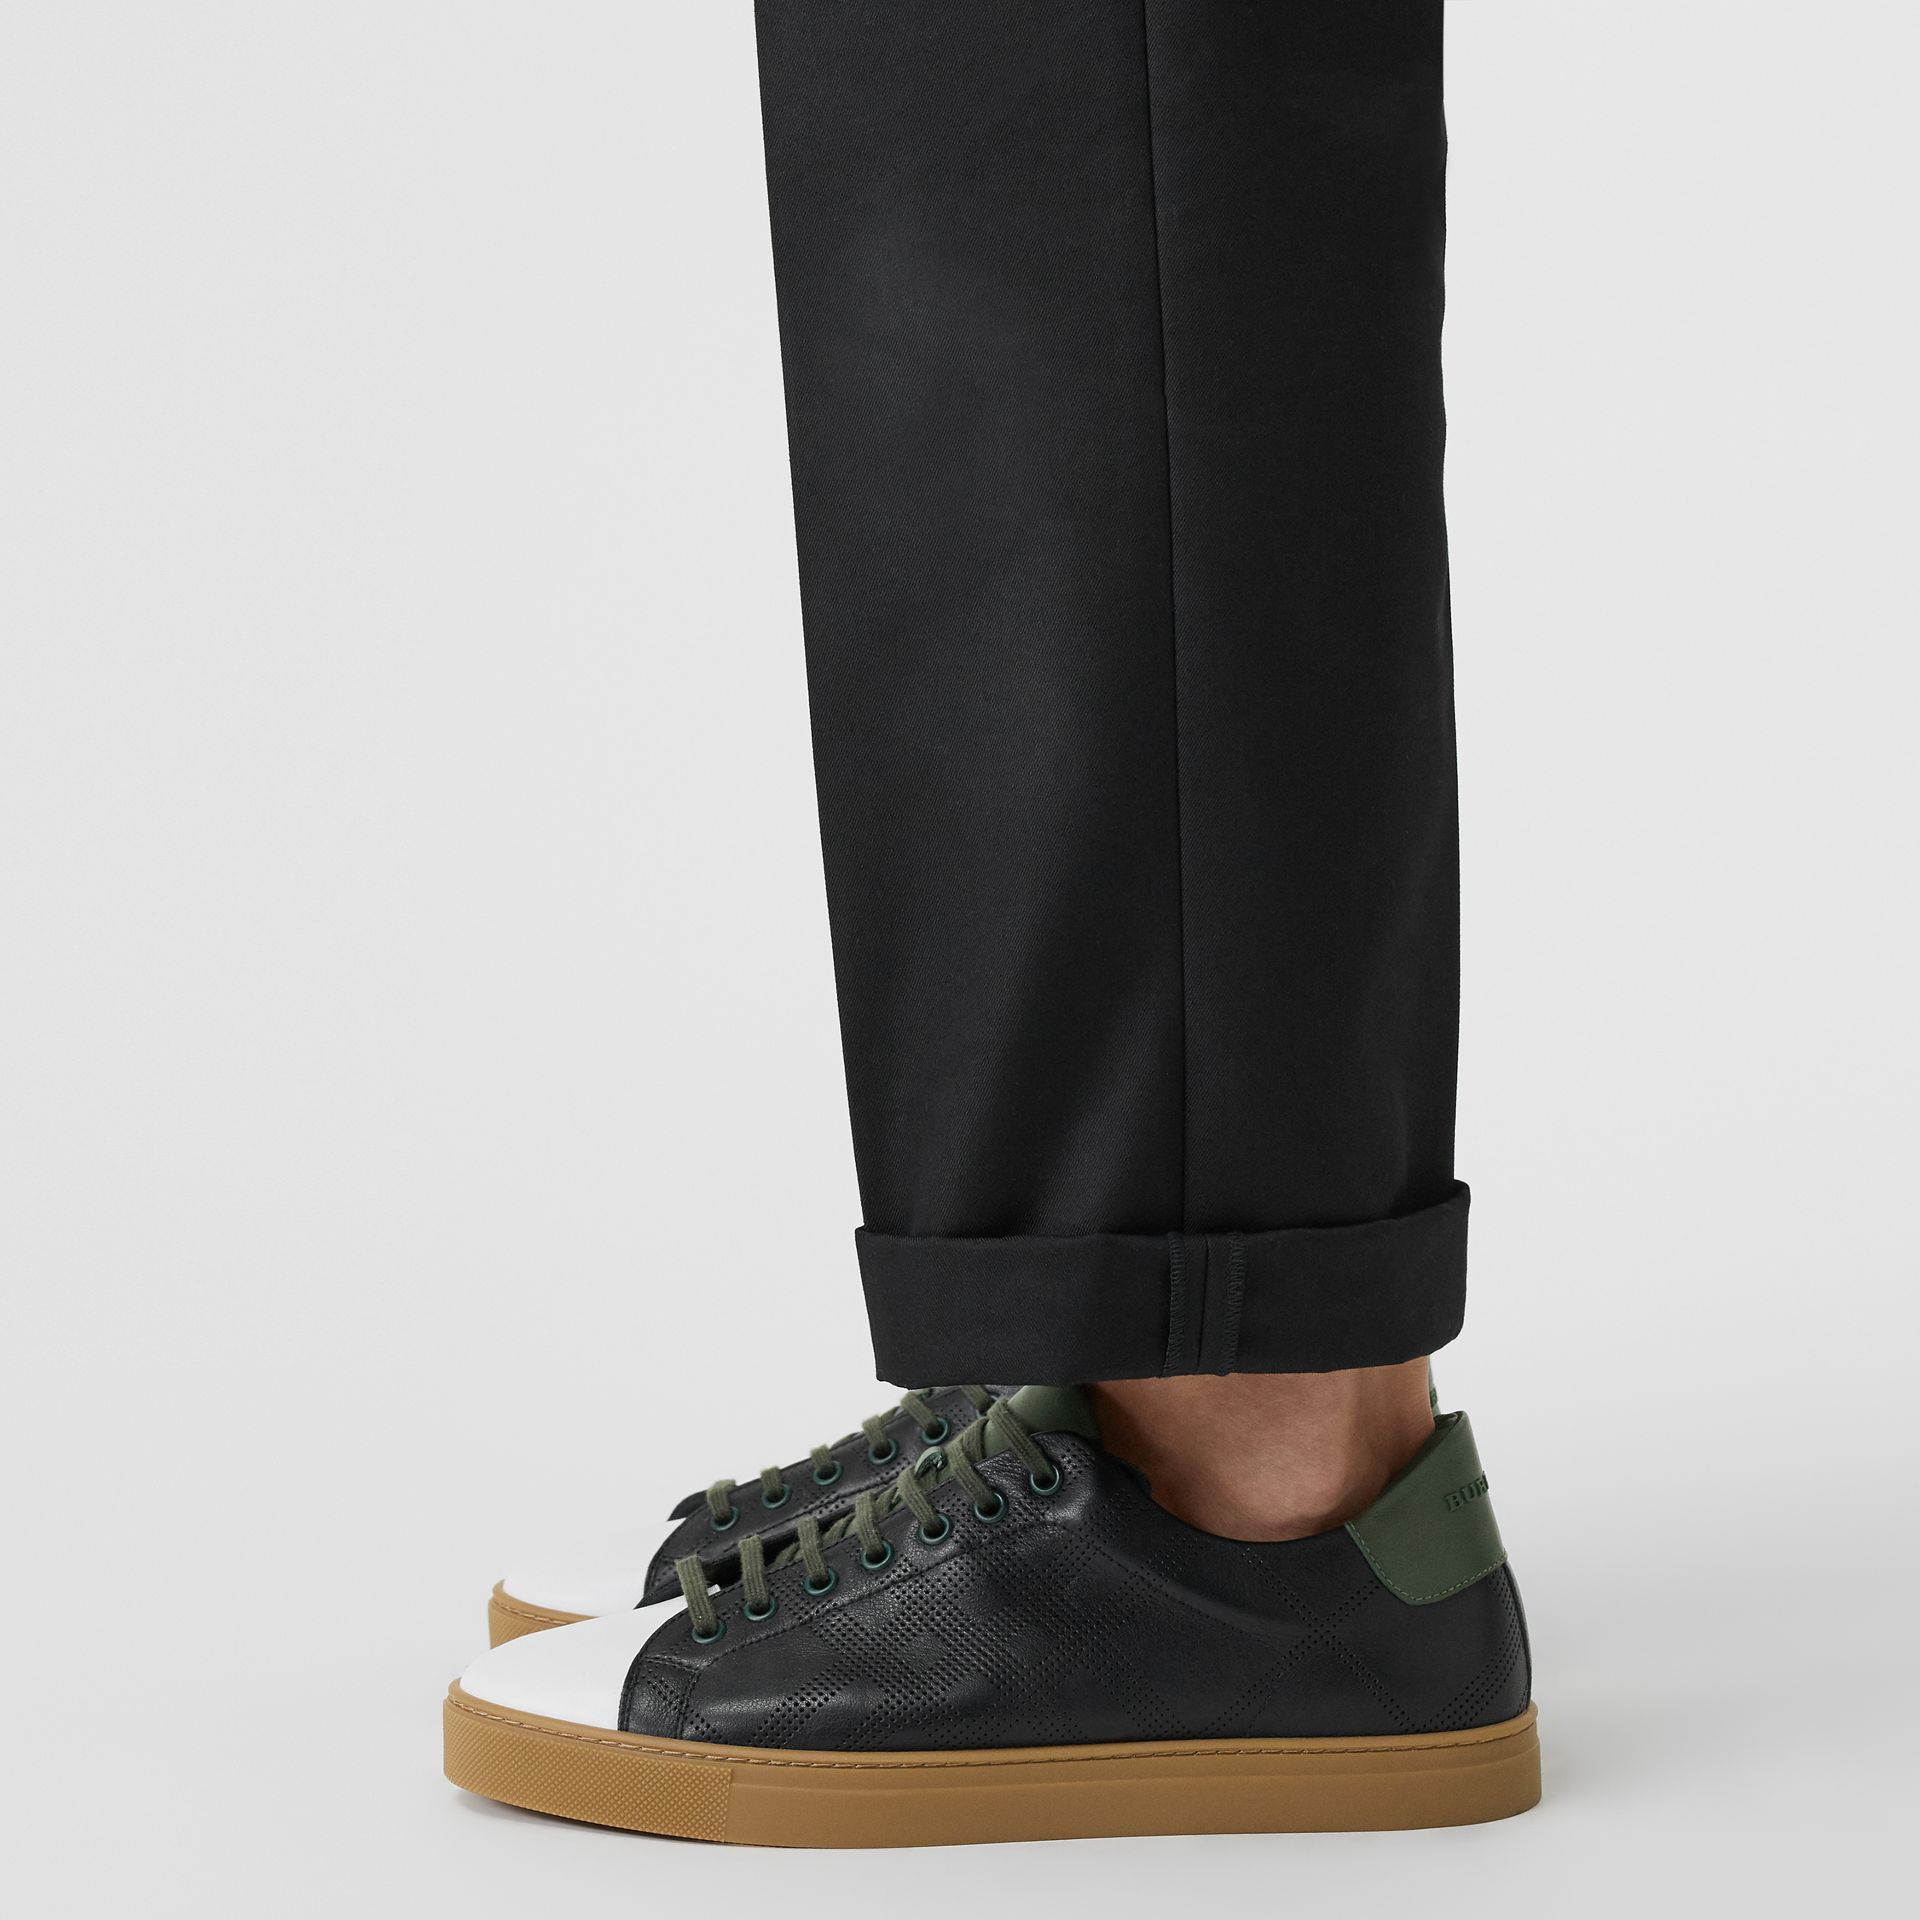 Perforated Check Leather Sneakers in Black/green - Men | Burberry Singapore - gallery image 2